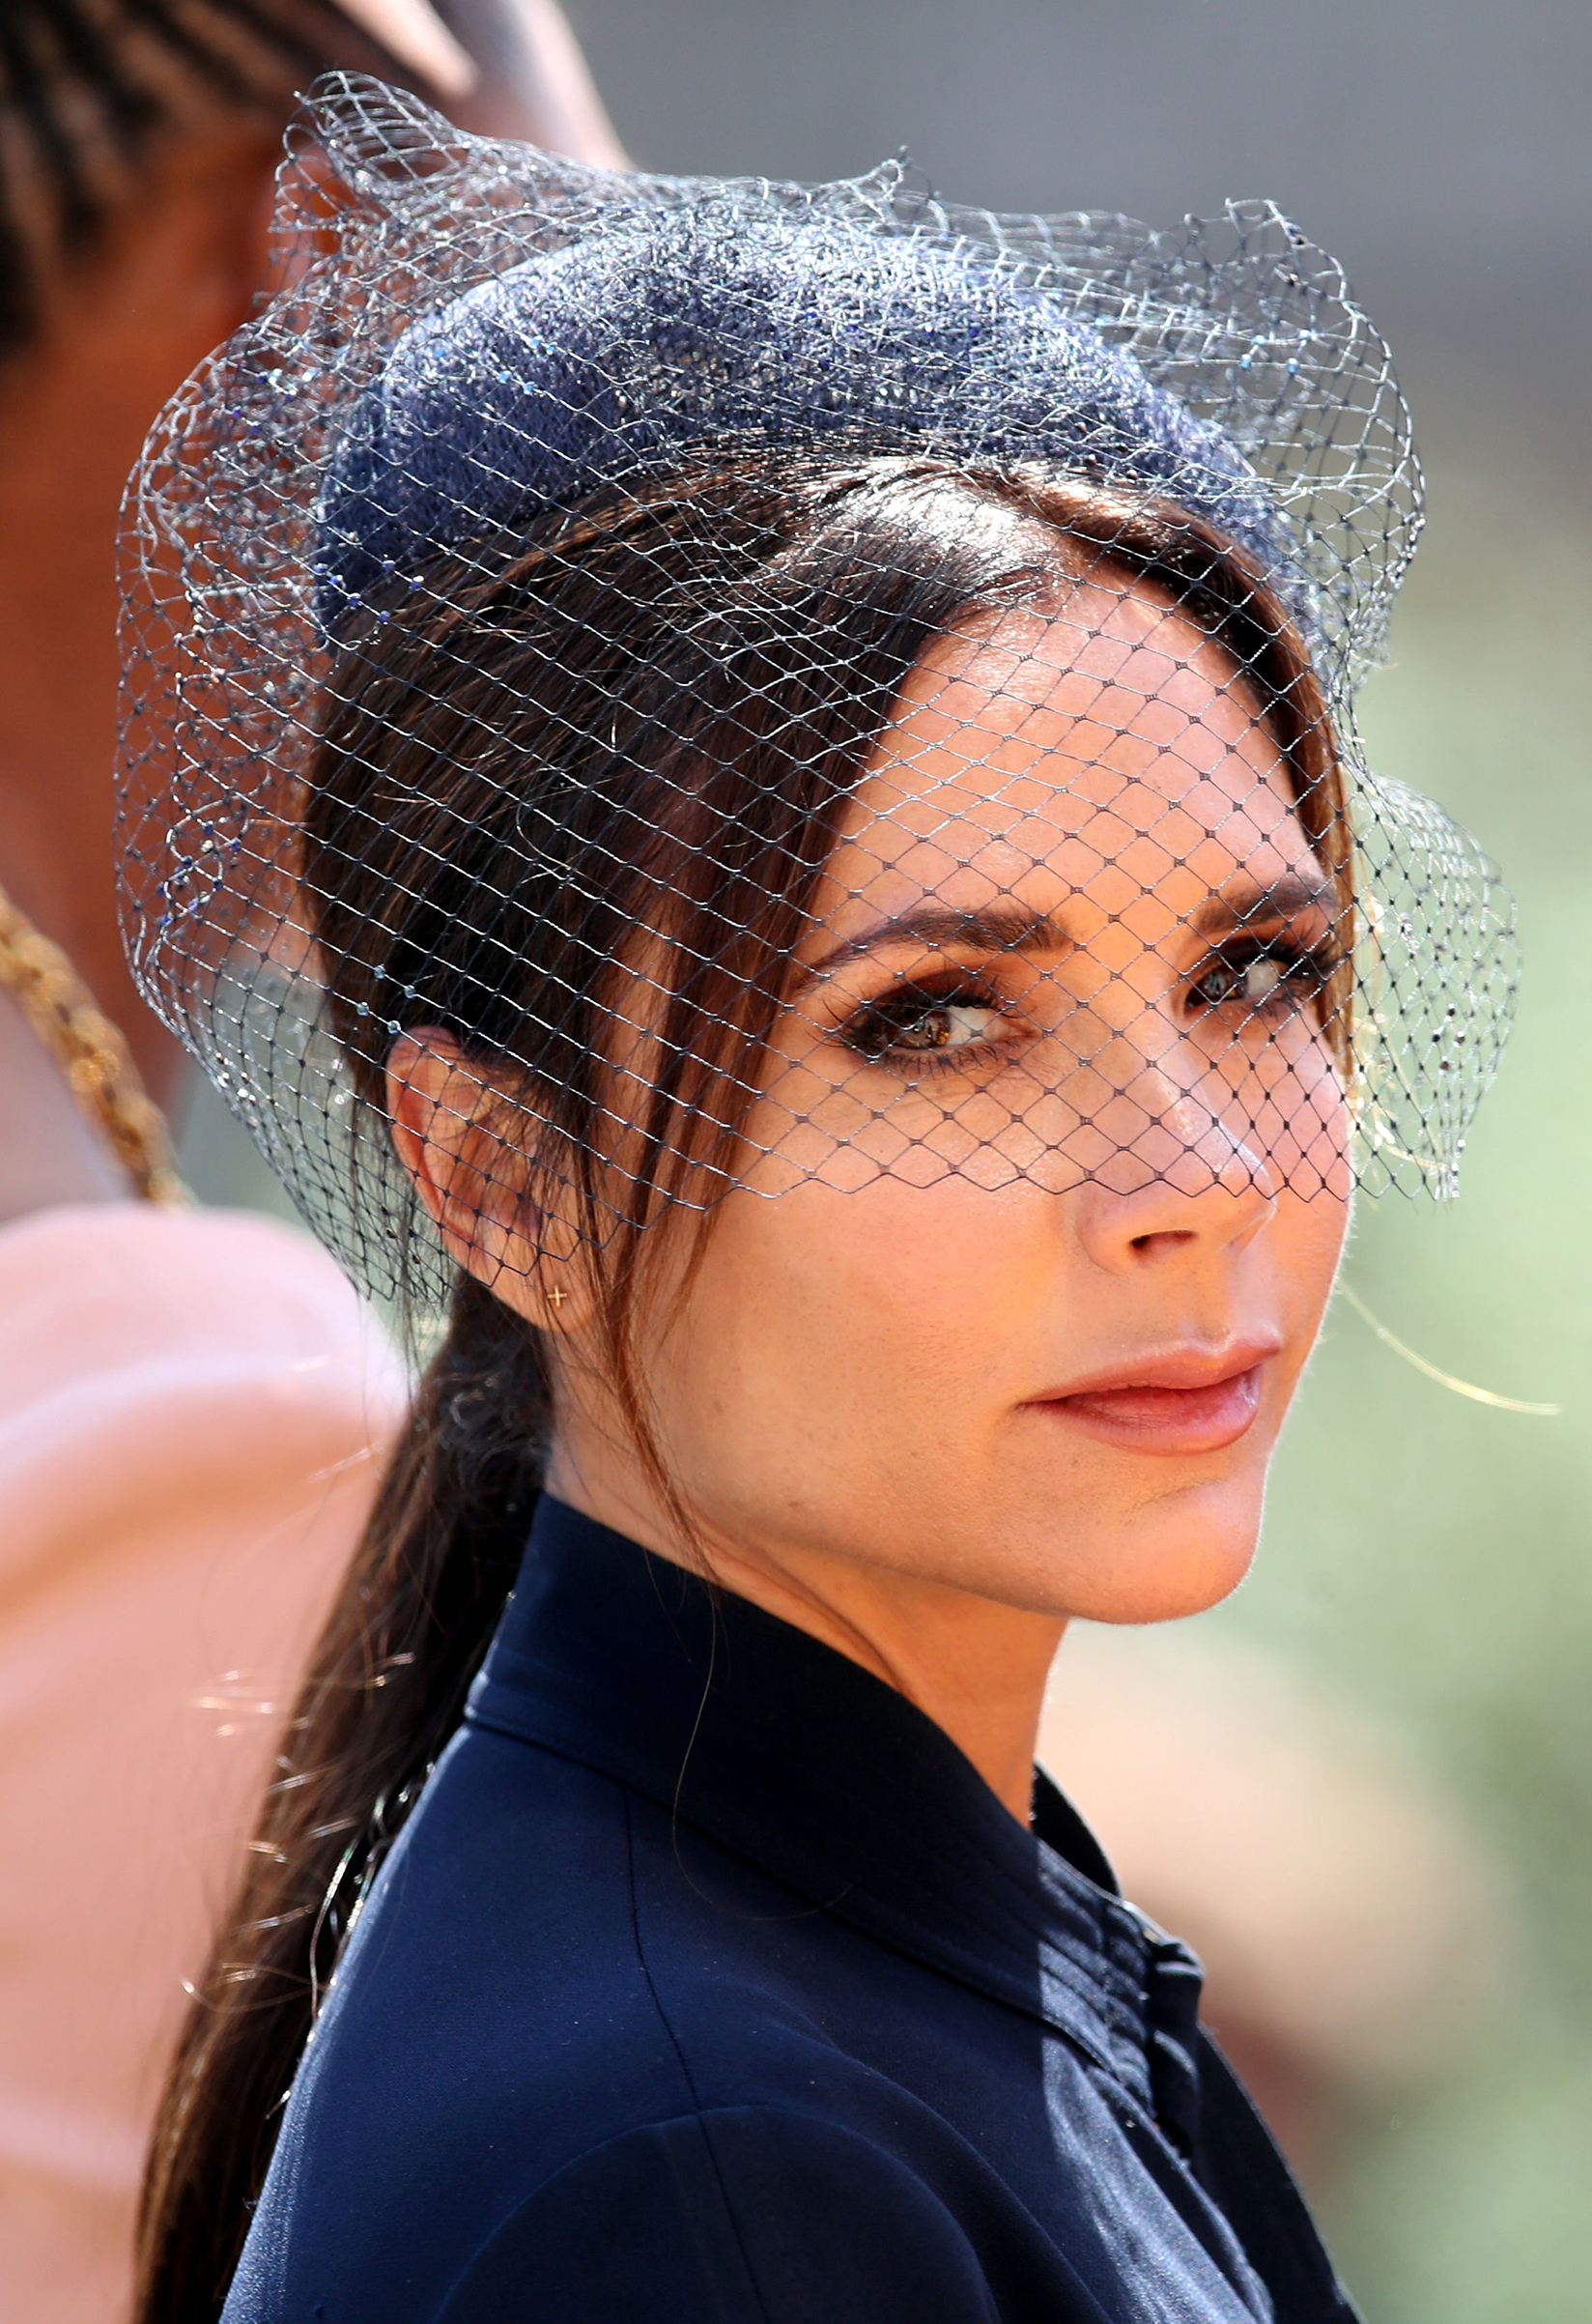 Victoria Beckham leaves St George's Chapel at Windsor Castle after the wedding of Meghan Markle and Prince Harry, May 19, 2018.